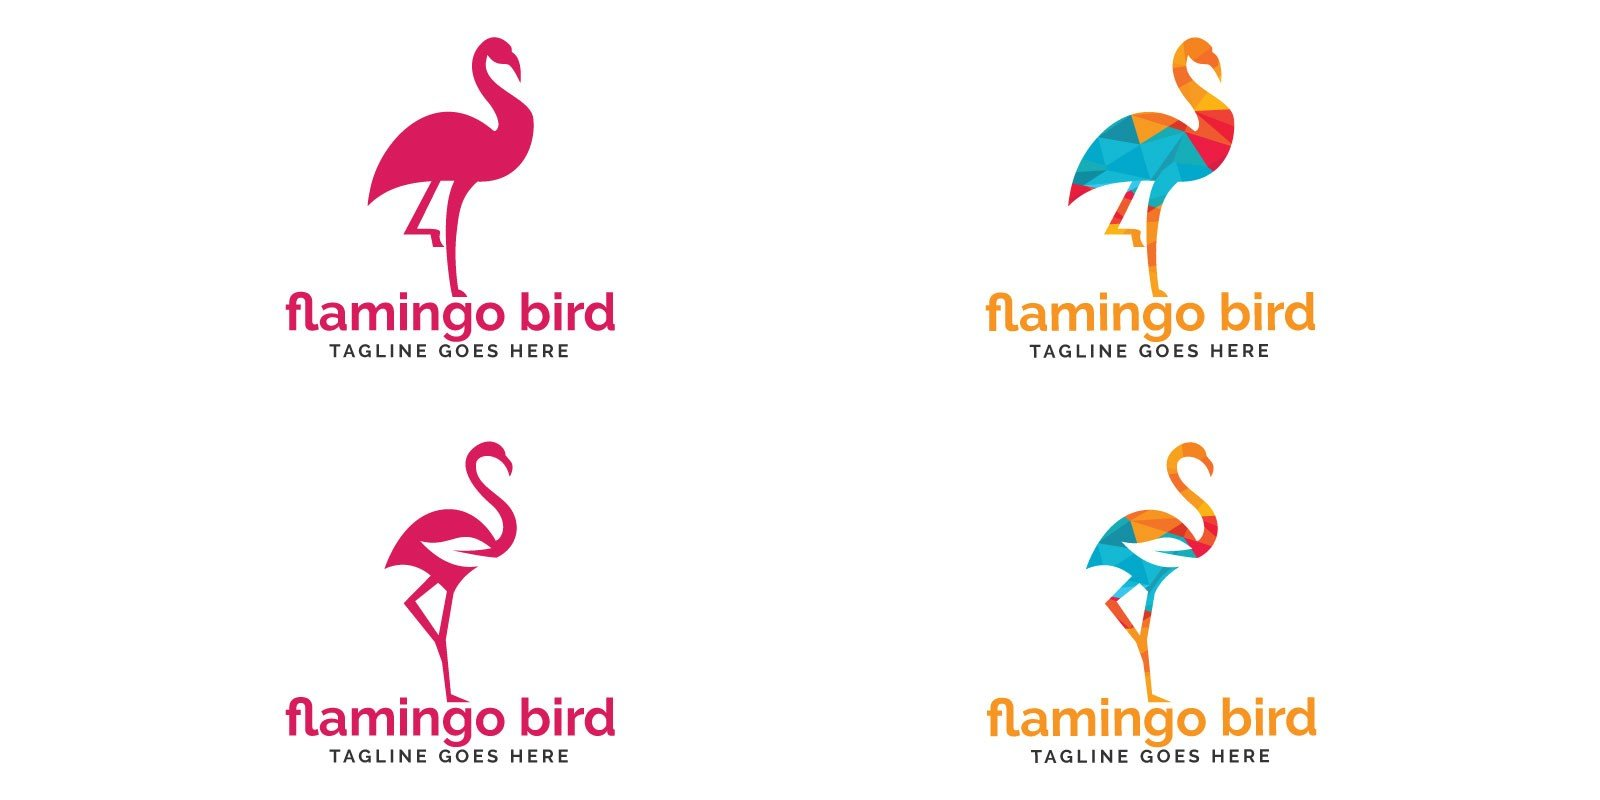 Flamingo Bird Logo Design